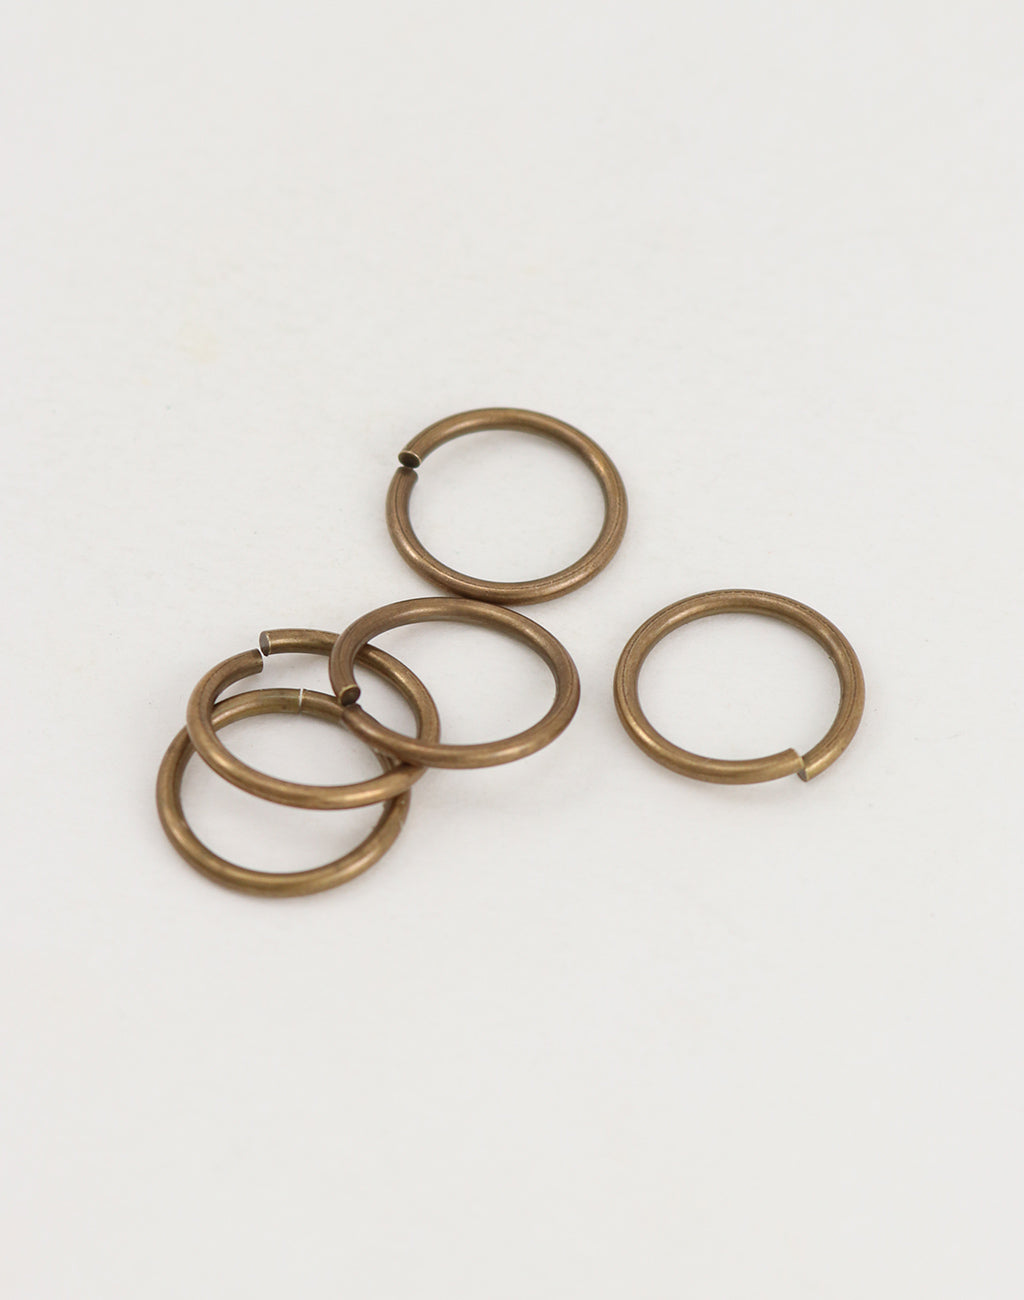 Smooth Jump Ring, 15mm, 15ga, (5pcs)